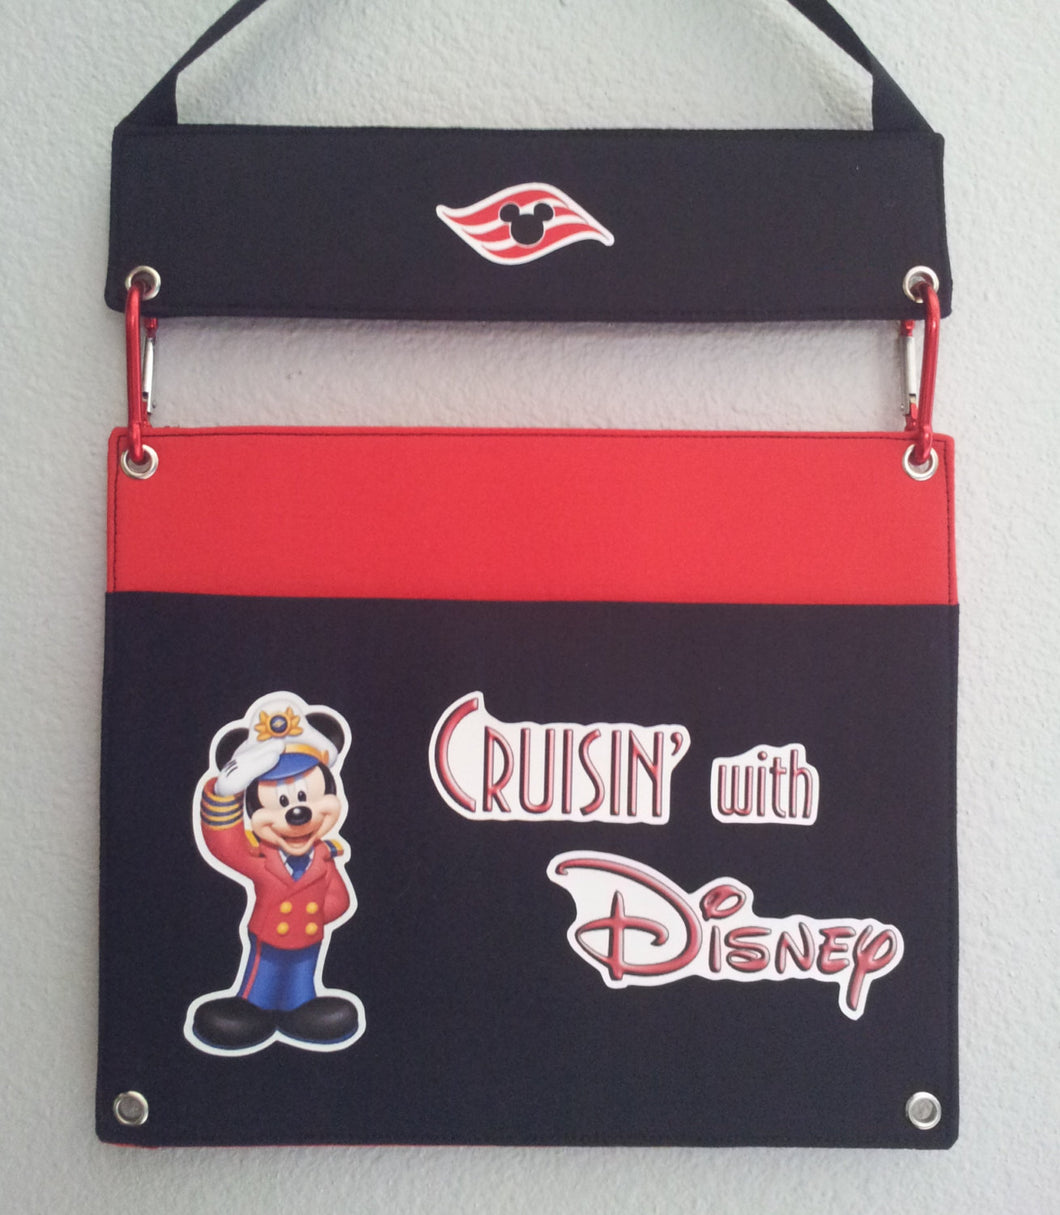 Fish Extender - DCL - Disney Cruise - One Pocket Flexible Fish Extender - FE - Fish Exchange - Mickey - Cruise Gift Exchange